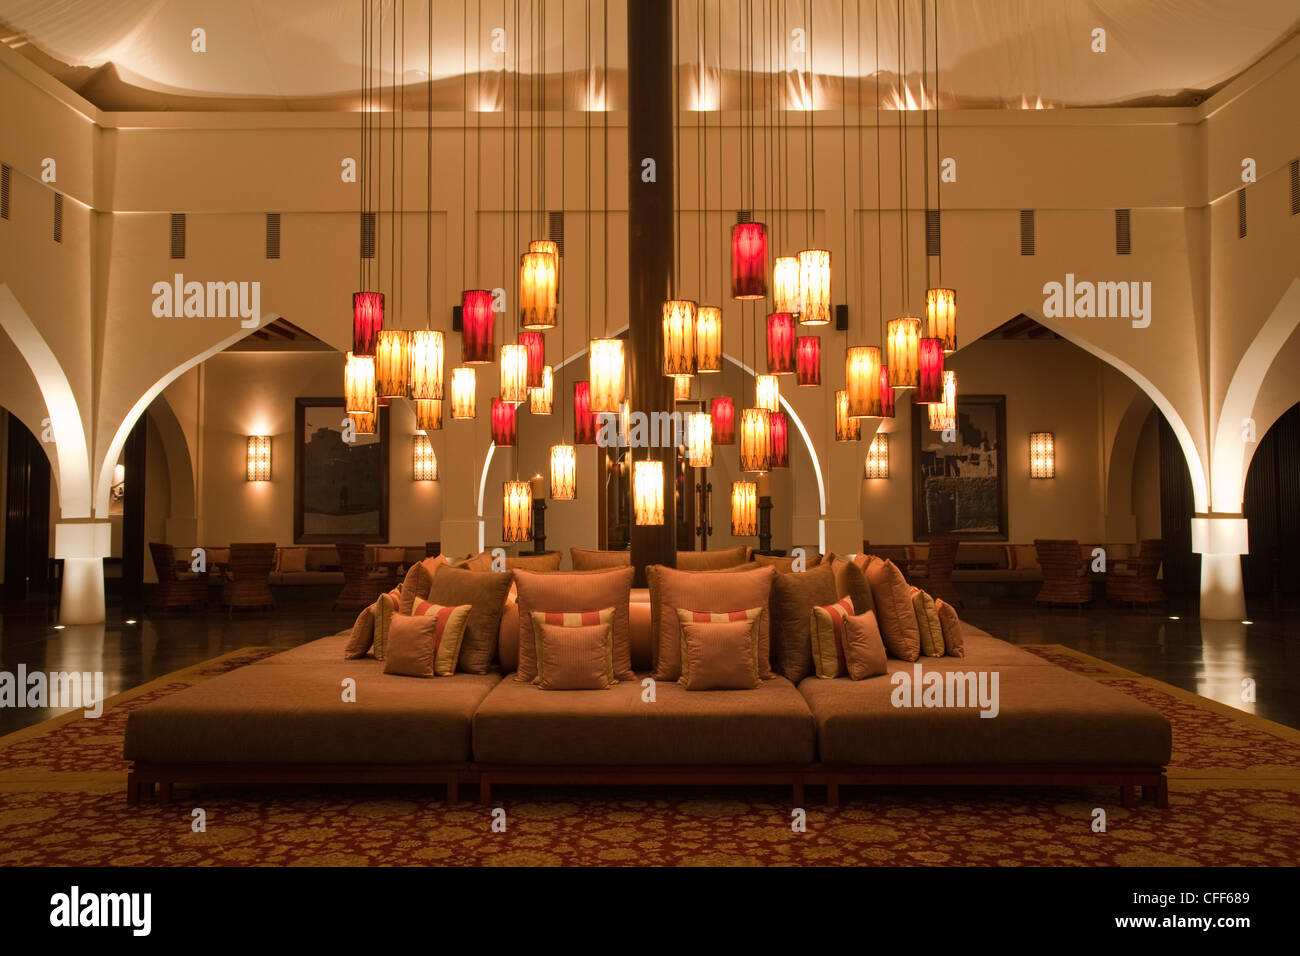 The Hotel Lobby The Chedi Muscat Hotel Muscat Masqat